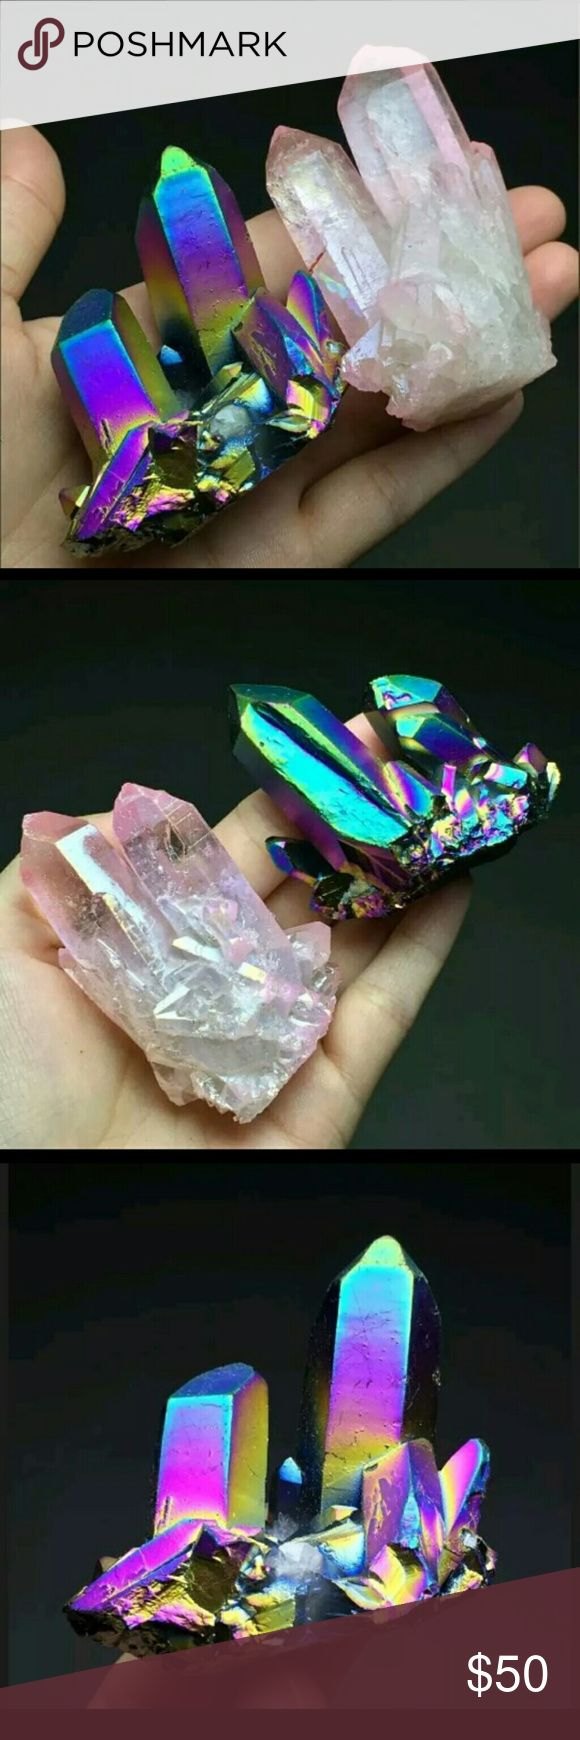 Aura Quartz Crystals Beautiful crystals!  155 grams total. *I have more crystals for sale on here! Forever 21 Other